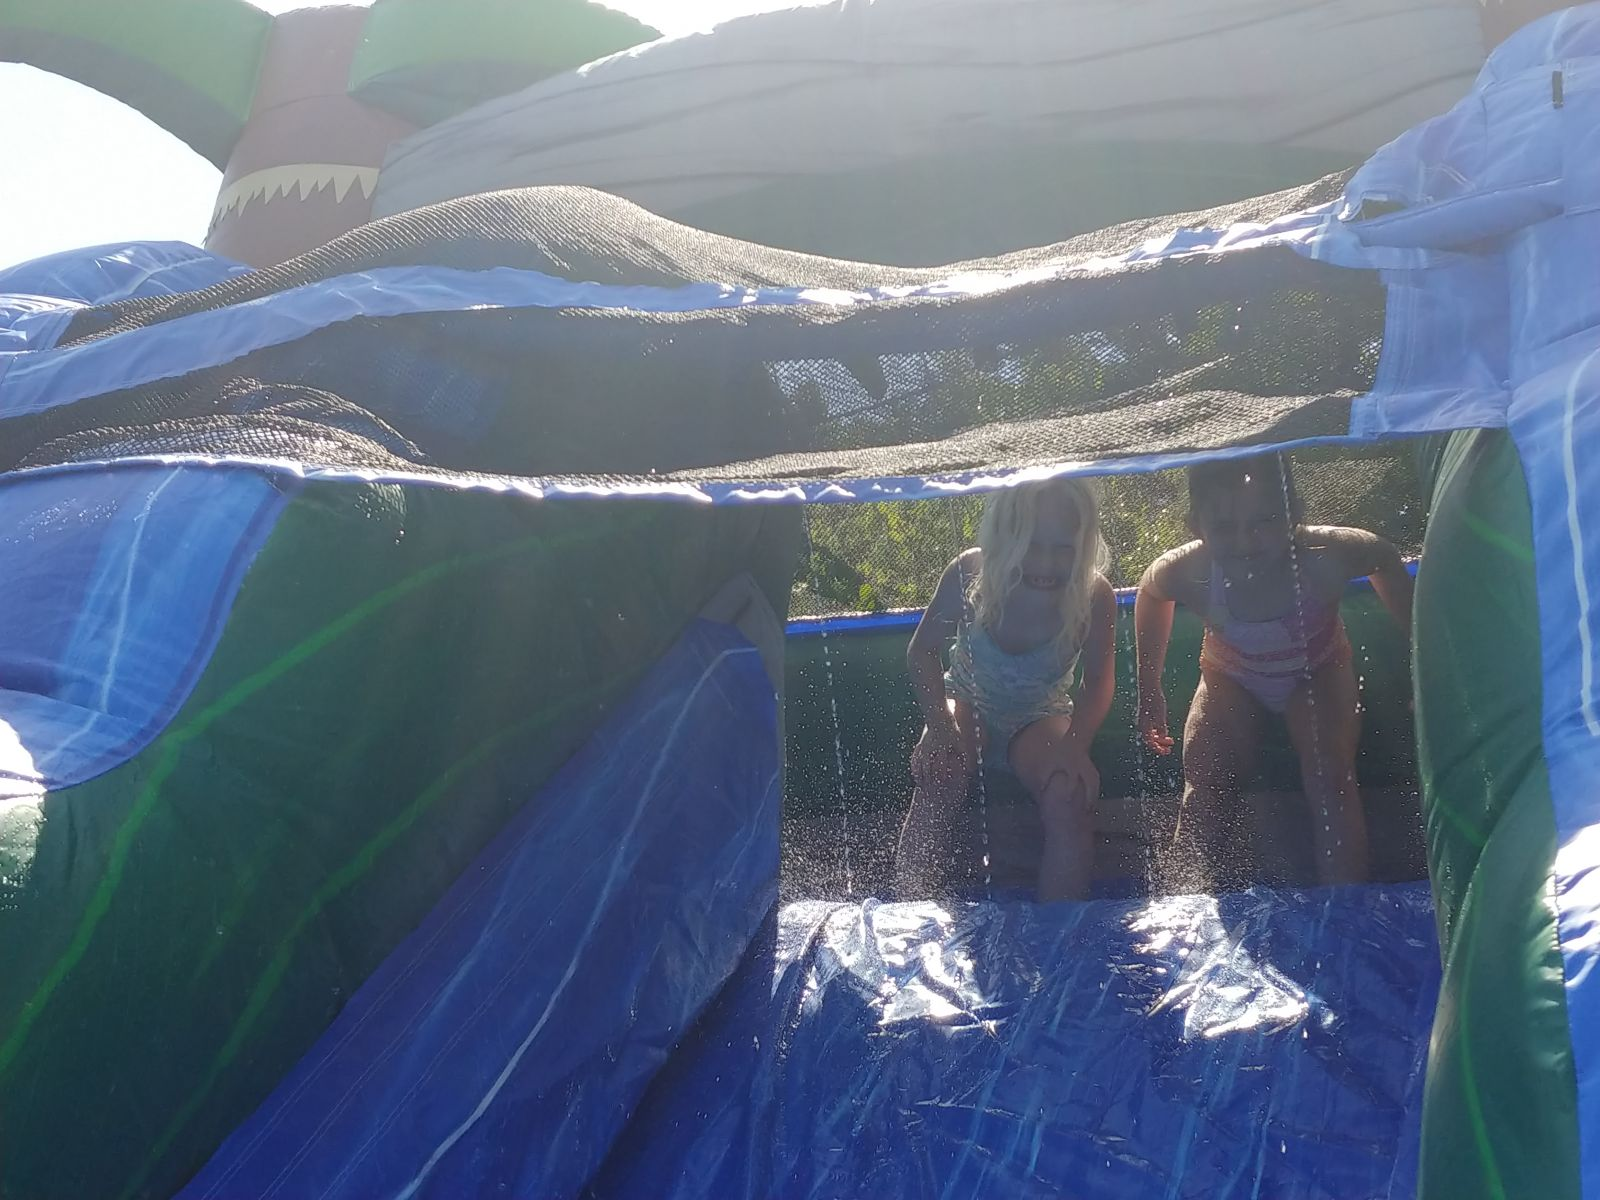 Water fall on top of slide rental with kids